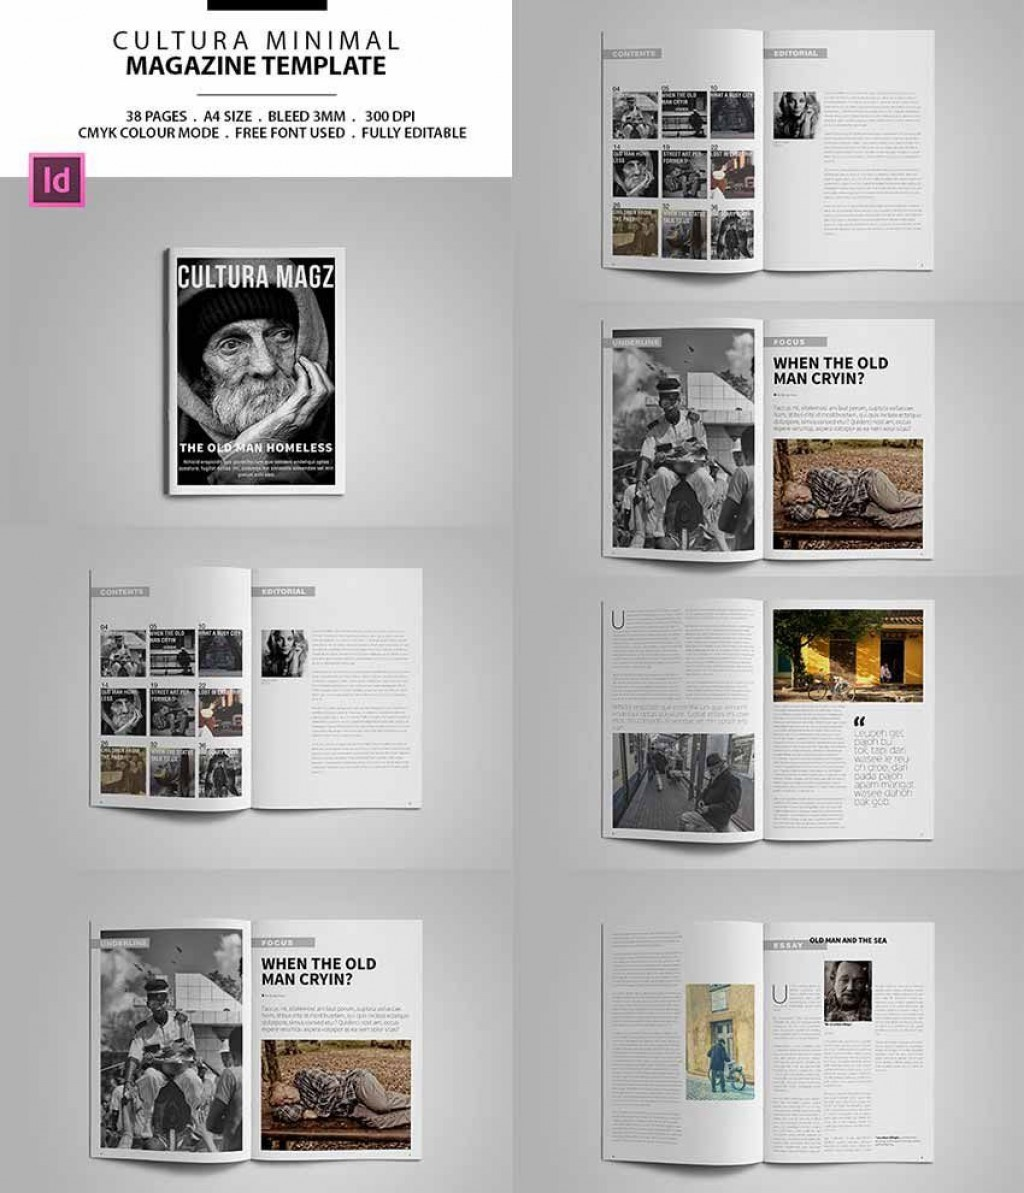 007 Excellent Indesign Magazine Template Free Design  Cover Download Indd Cs5Large